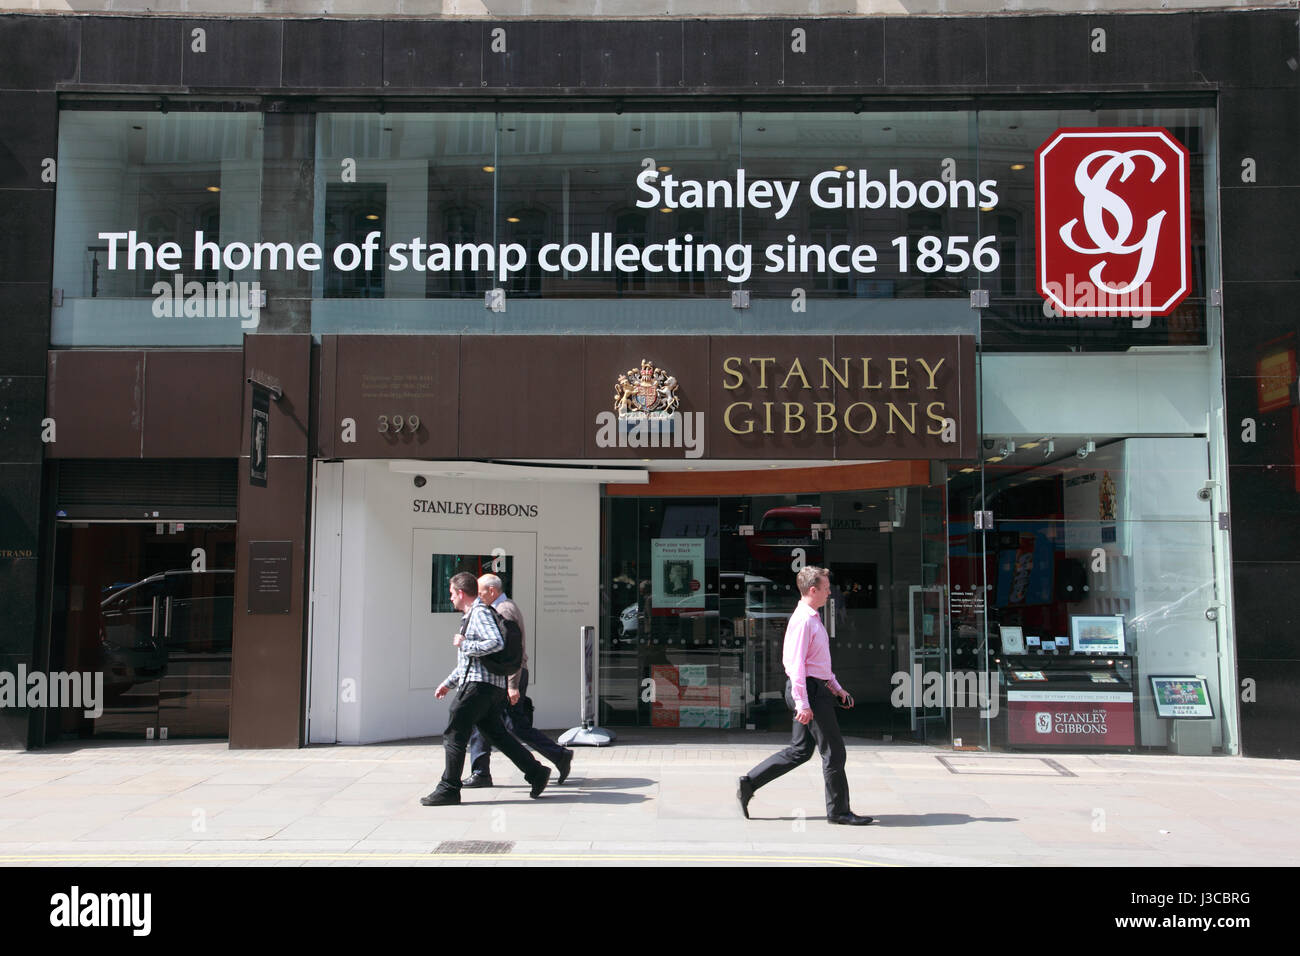 The main office of Stanley Gibbons, philatelic specialists, on the Strand, London - Stock Image